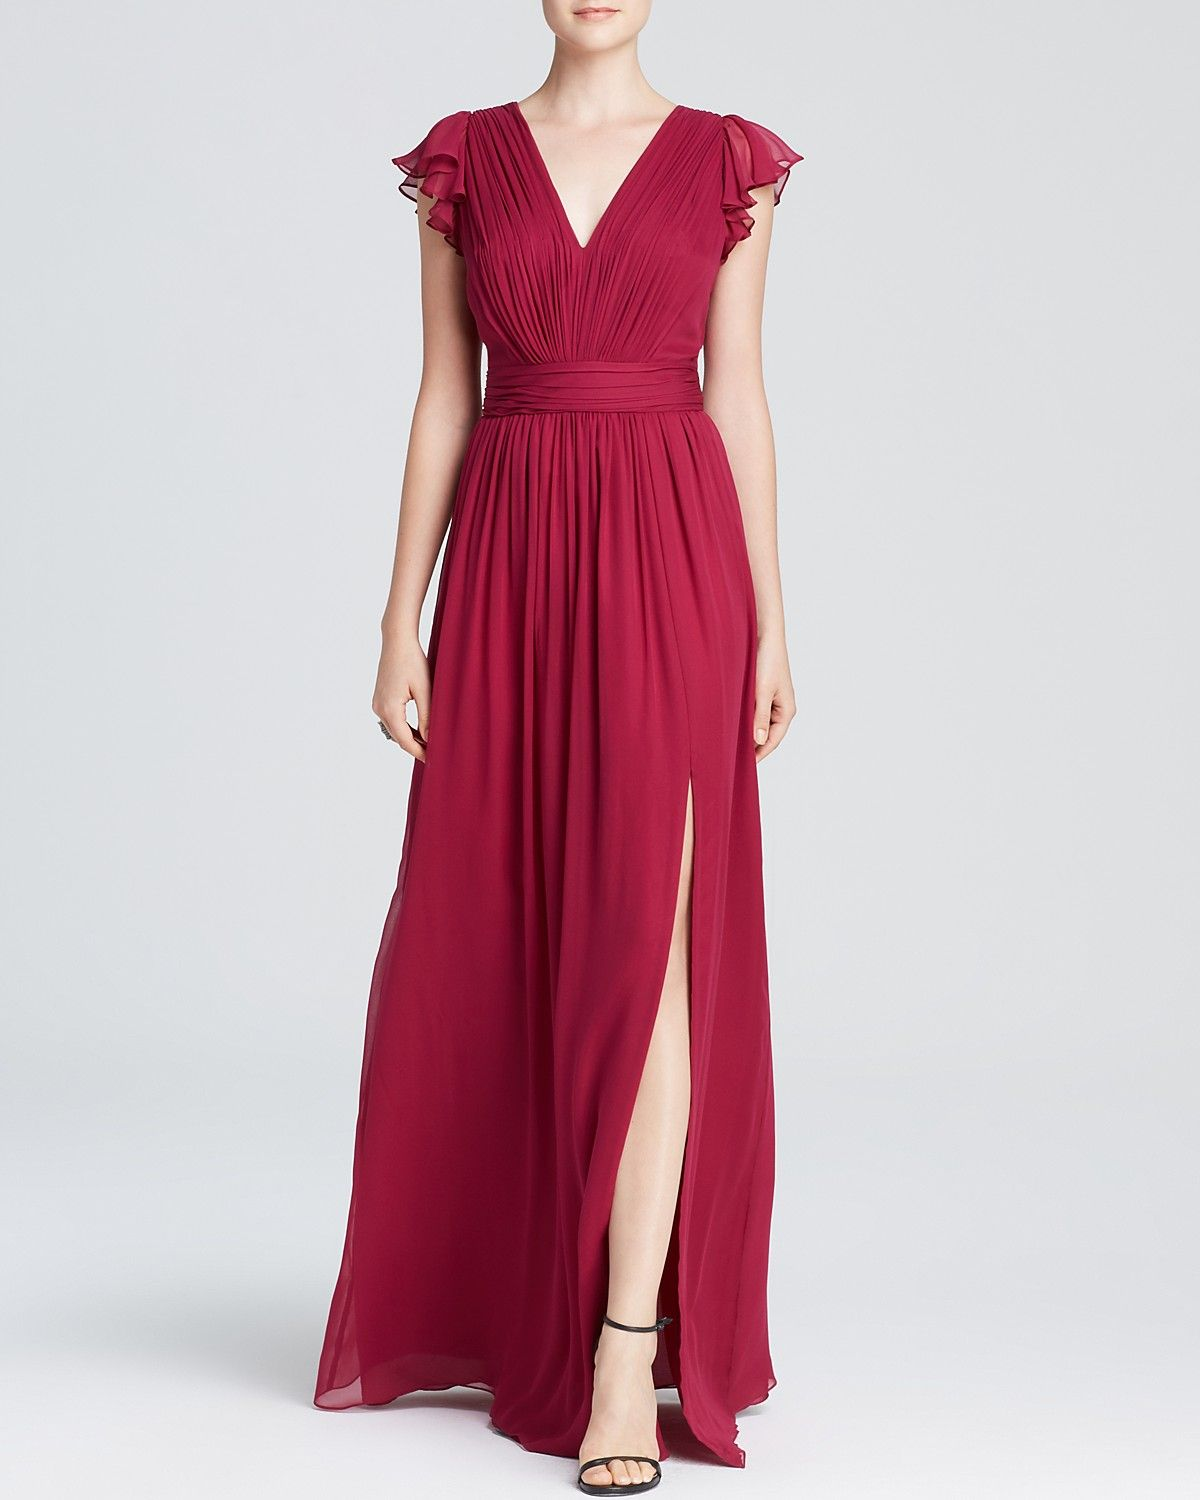 Long dresses to wear to a wedding  Marsala Wedding Inspiration  Jill Stuart Gown  VNeck Flutter Cap